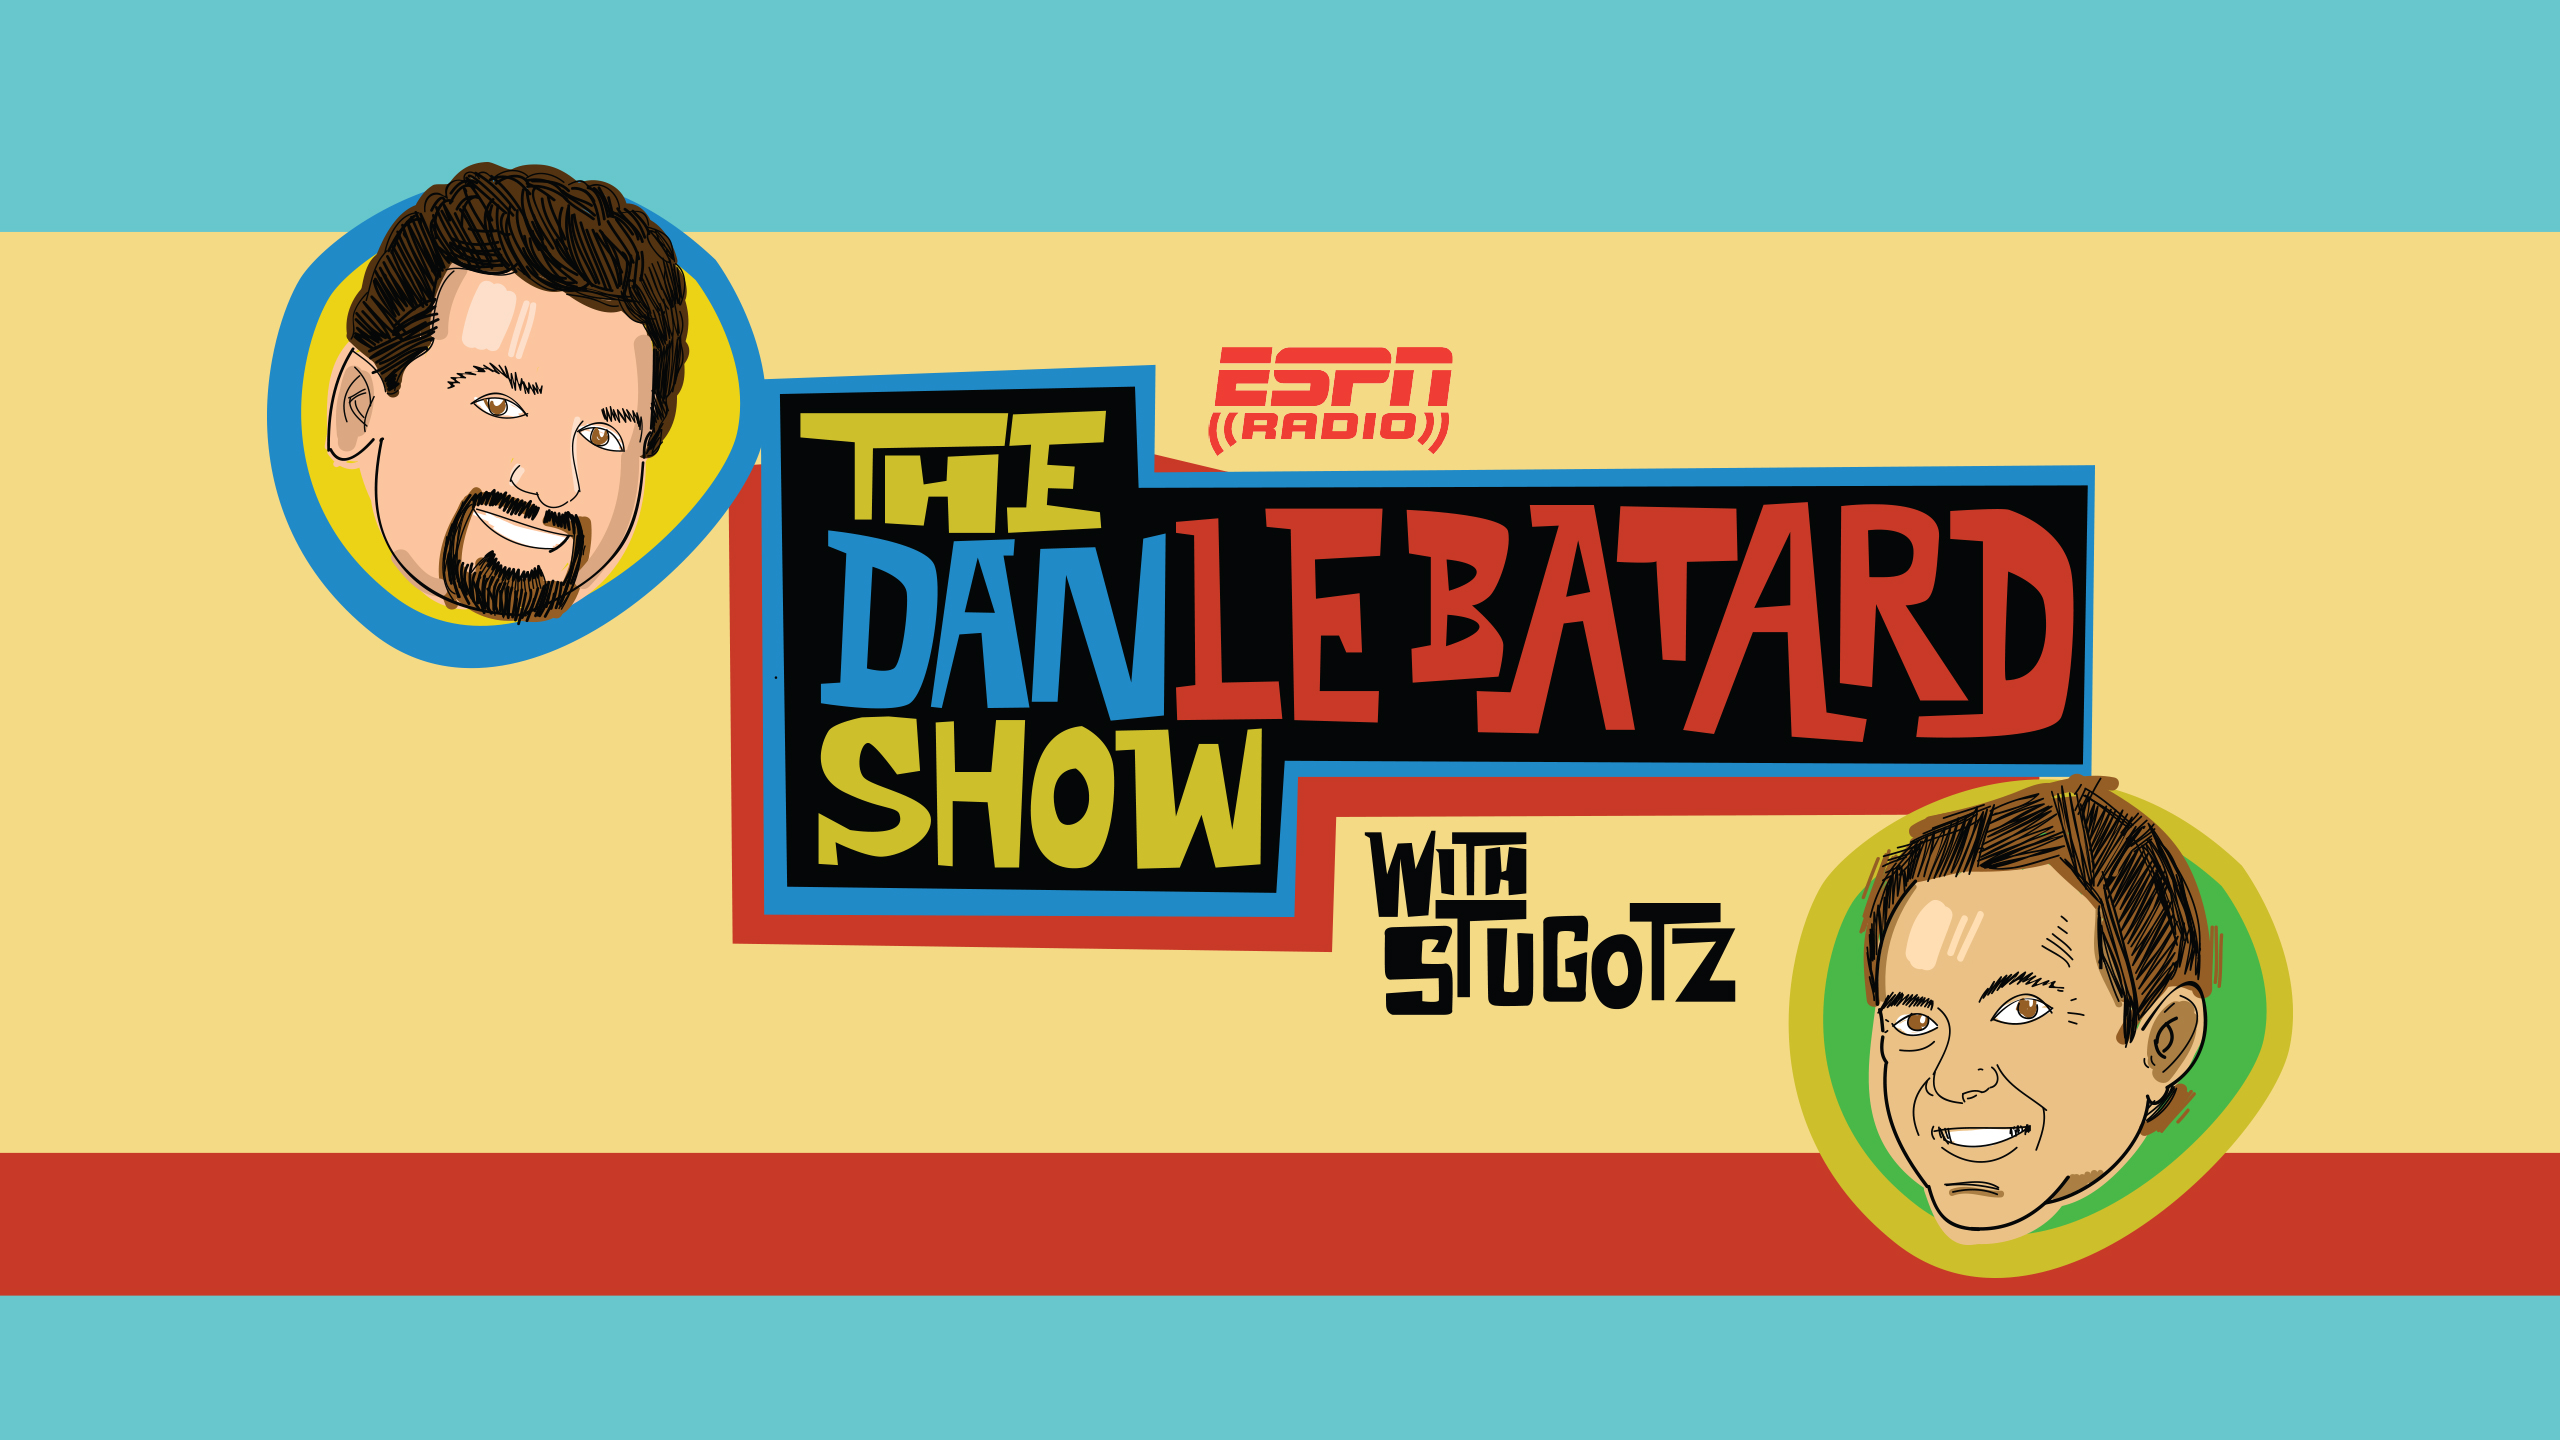 Wed, 9/19 - The Dan Le Batard Show with Stugotz Presented by Progressive